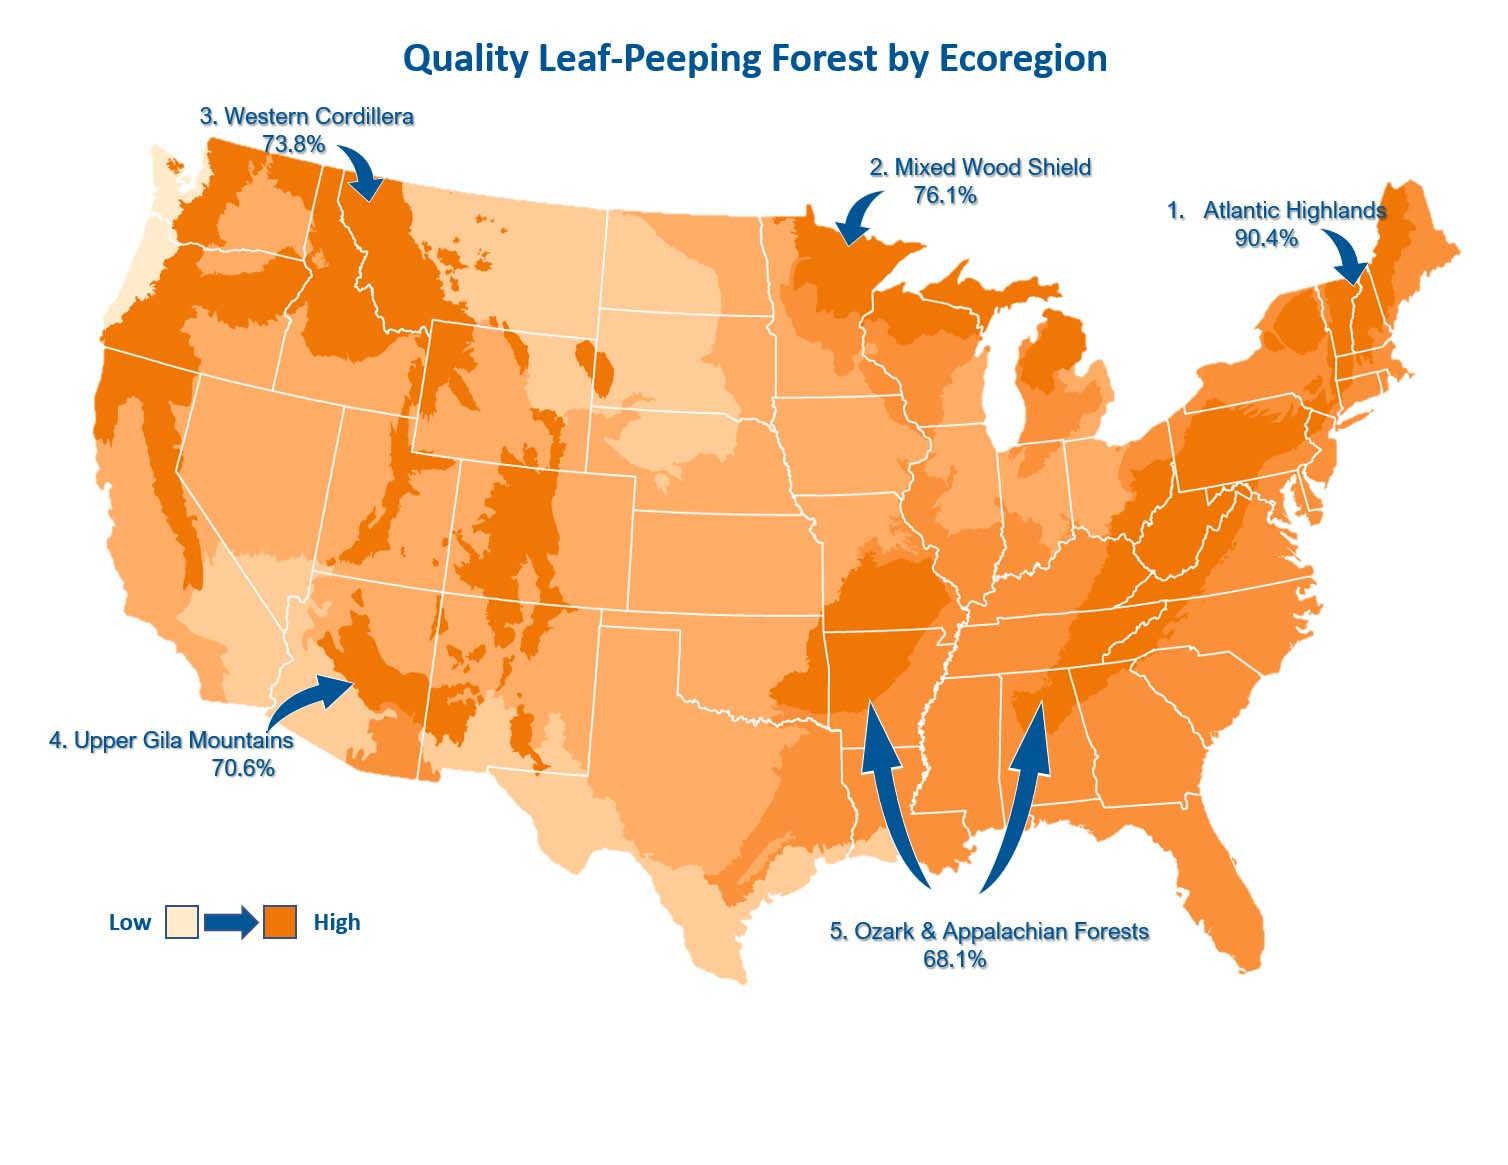 Map of quality leaf-peeping regions